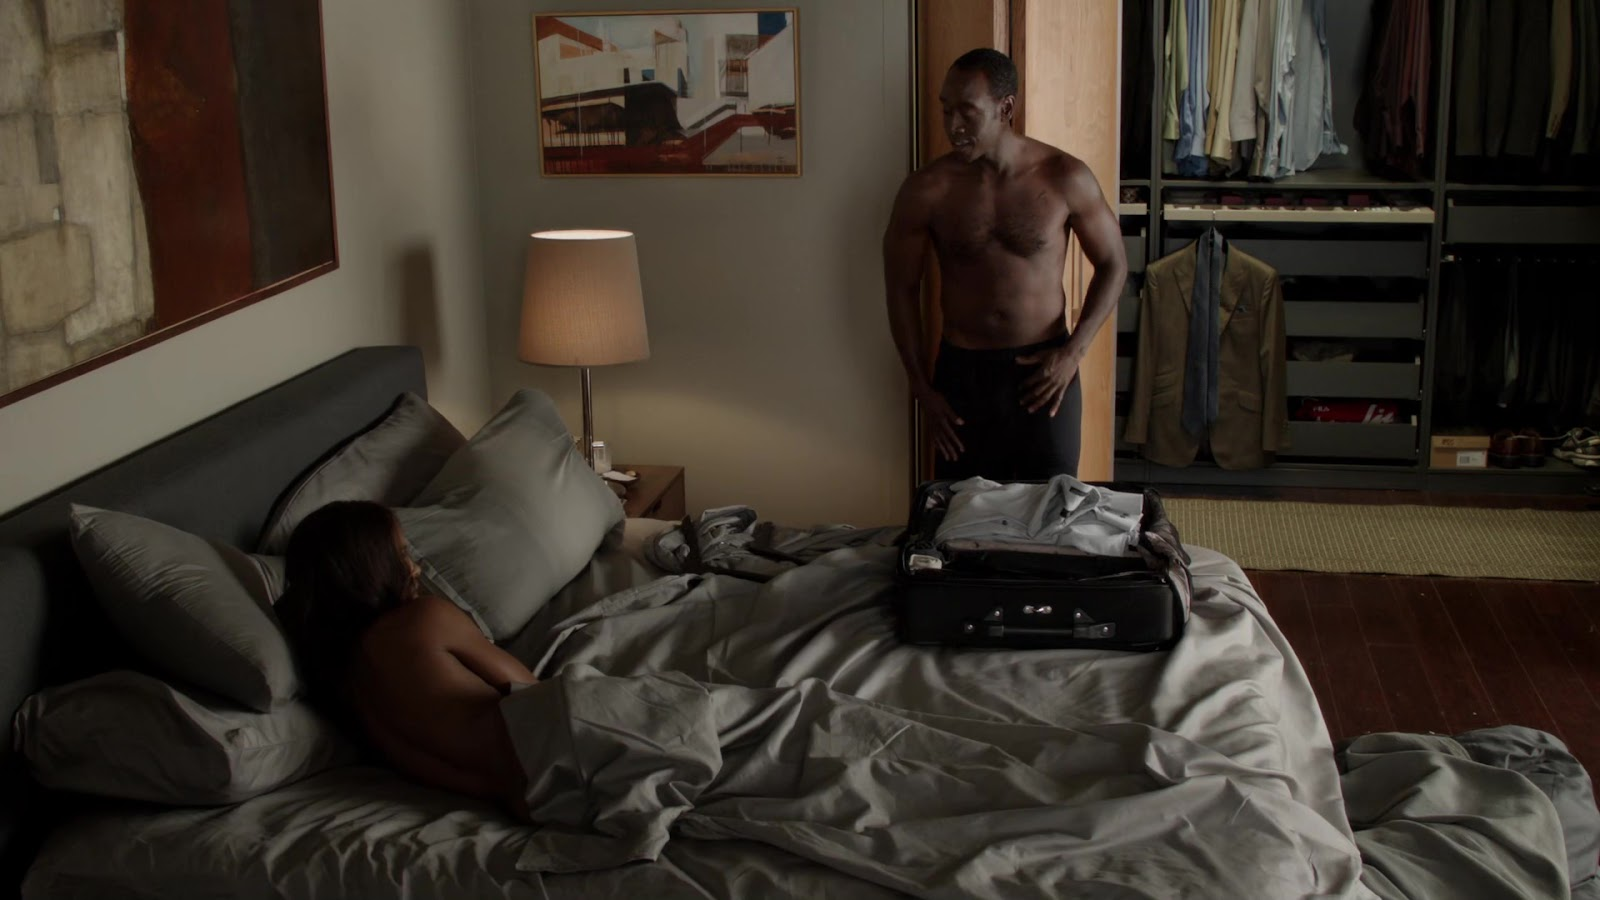 Naked dawn olivieri in house of lies ancensored